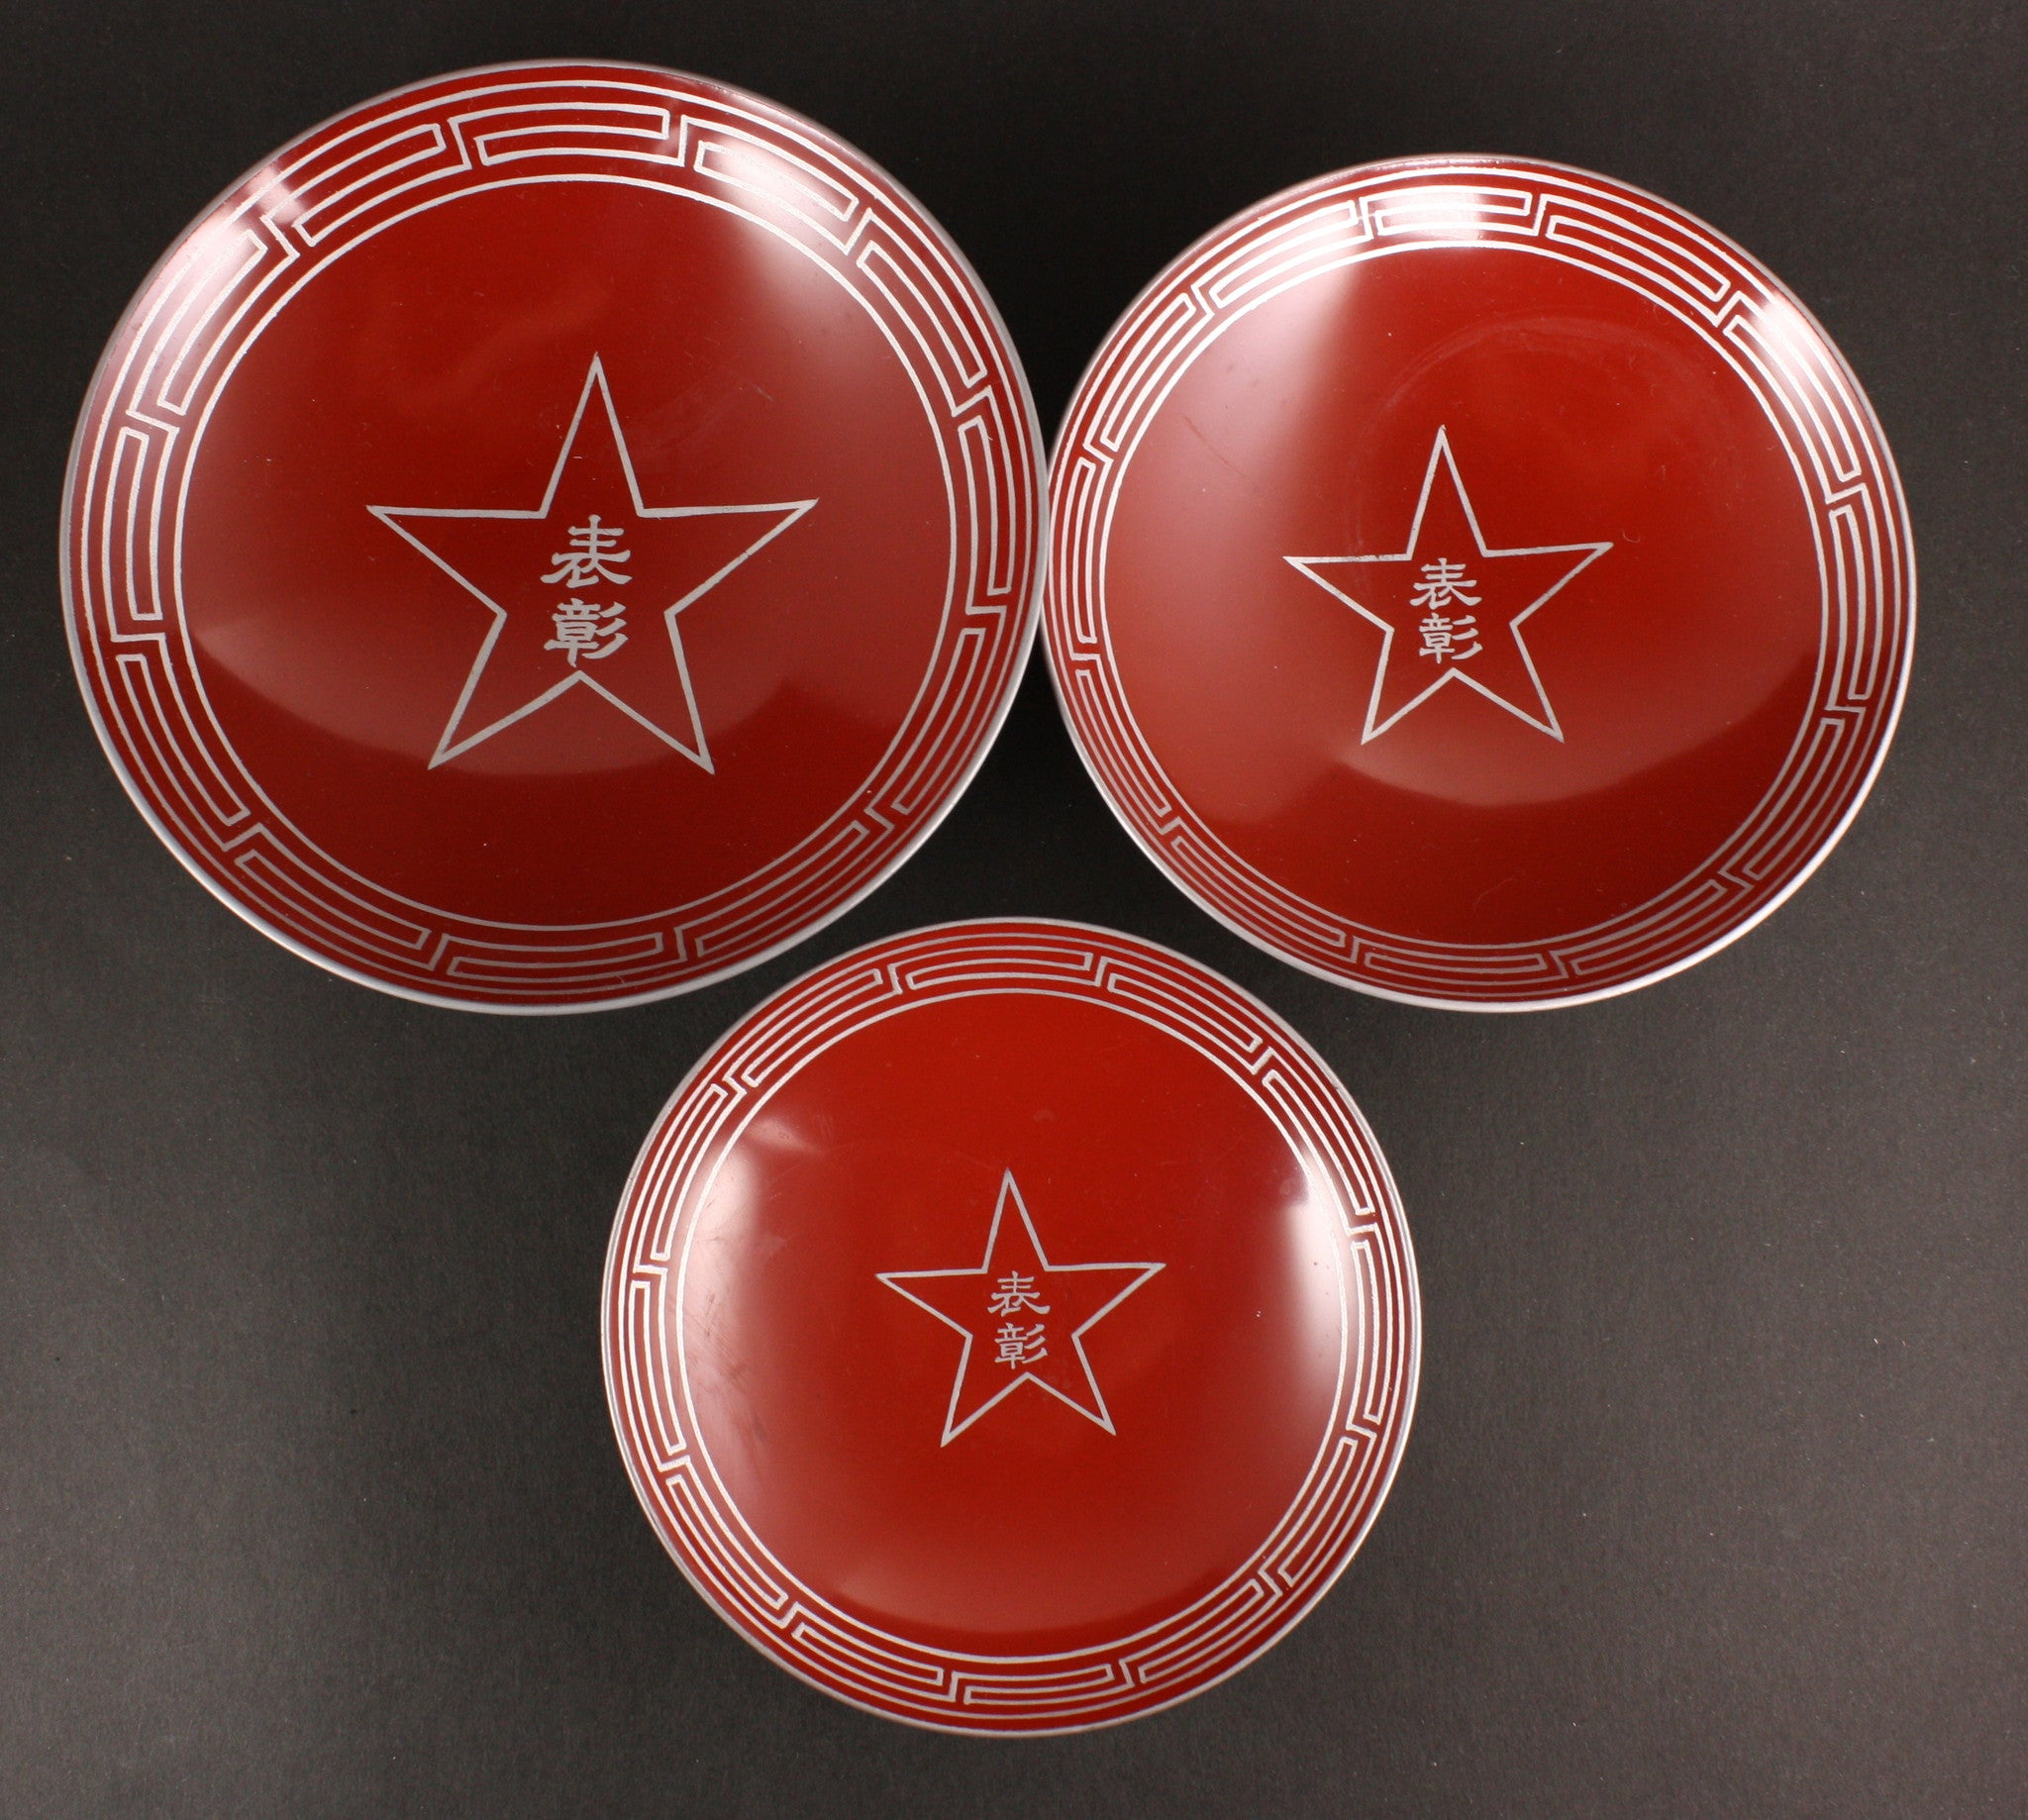 Antique Japanese Military Minister of the Army Award for Military Contribution Lacquer Sake Cup Set